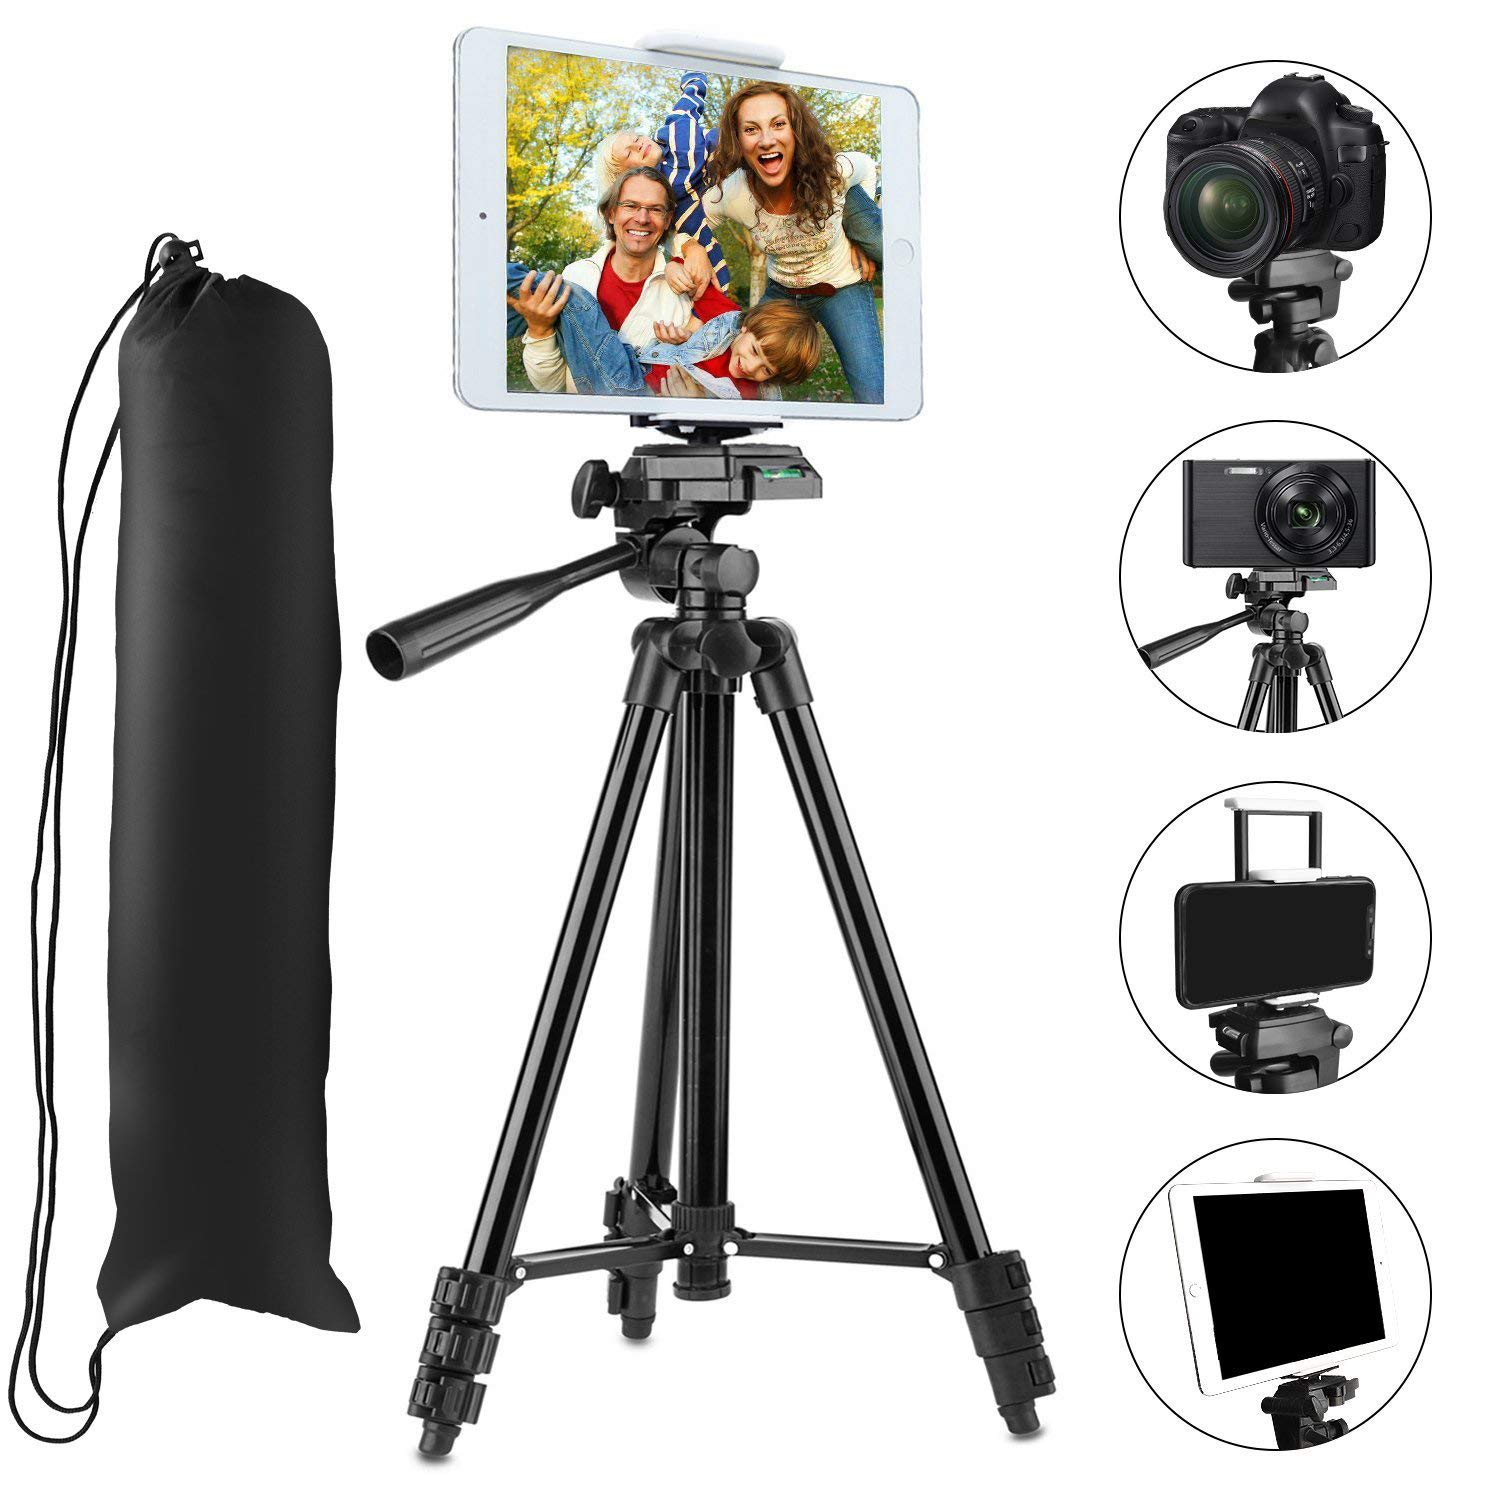 """Tripod Compatible iPad iPhone,PEYOU 50"""" inch Portable Lightweight Aluminum Phone Camera Tablet Tripod + 2 in 1 Universal Mount Holder Compatible Smartphone (Width 2-3.3""""),Tablet (Width 4.3-7.2"""")"""